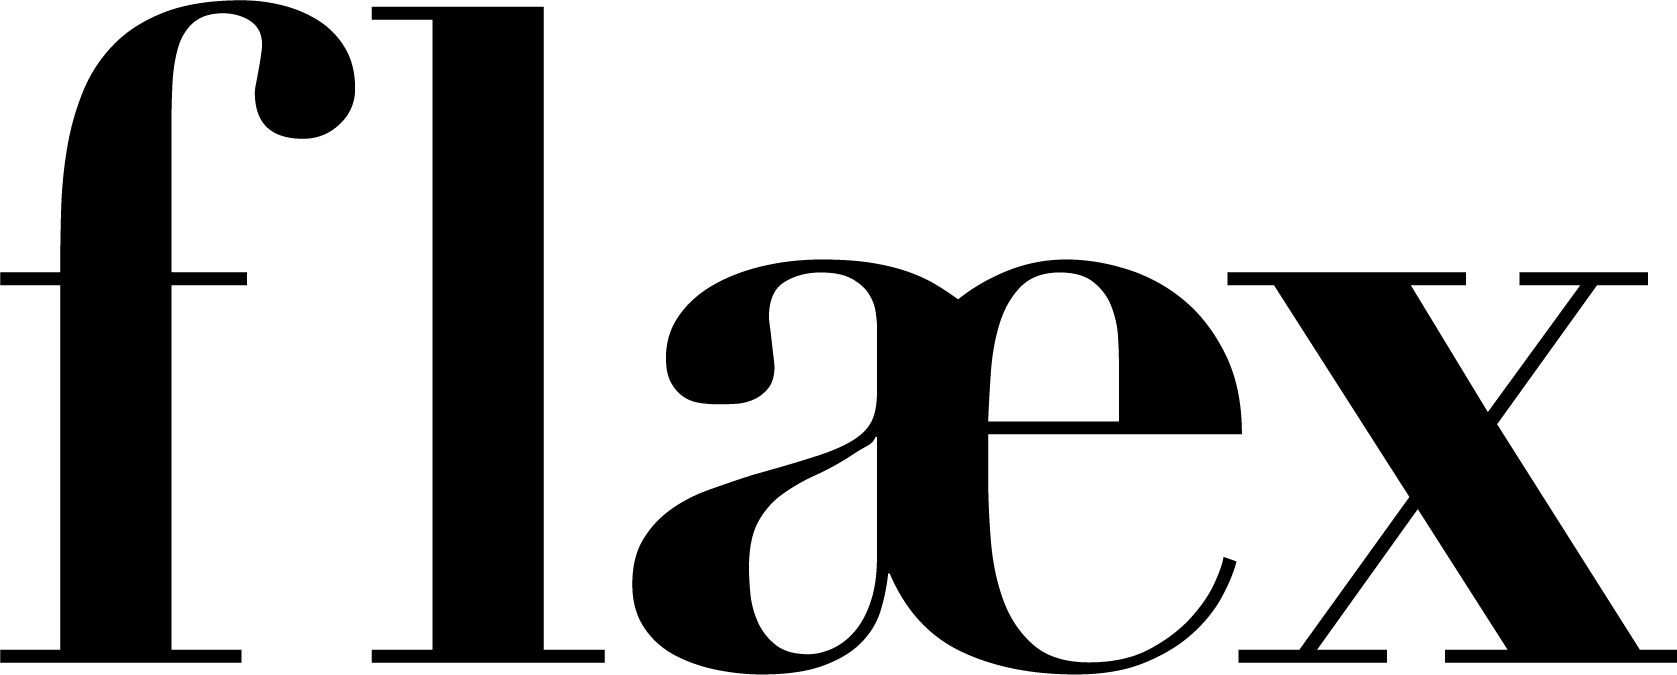 Flaex_logo.png